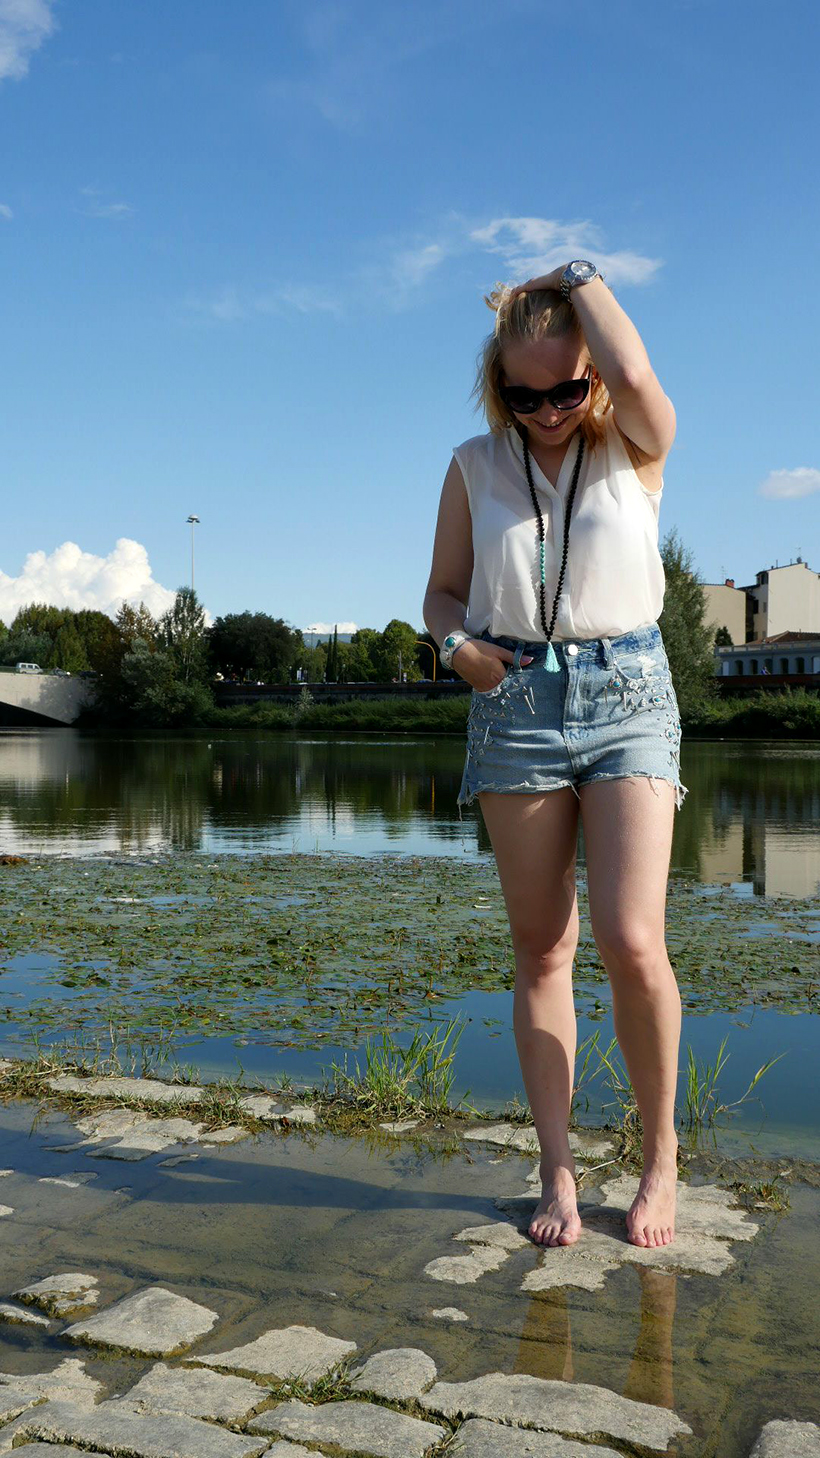 fashion-outfit-ootd-blogger-firenze-arno-turquoise waters-acqua-river-nature-moda-sarandipity9